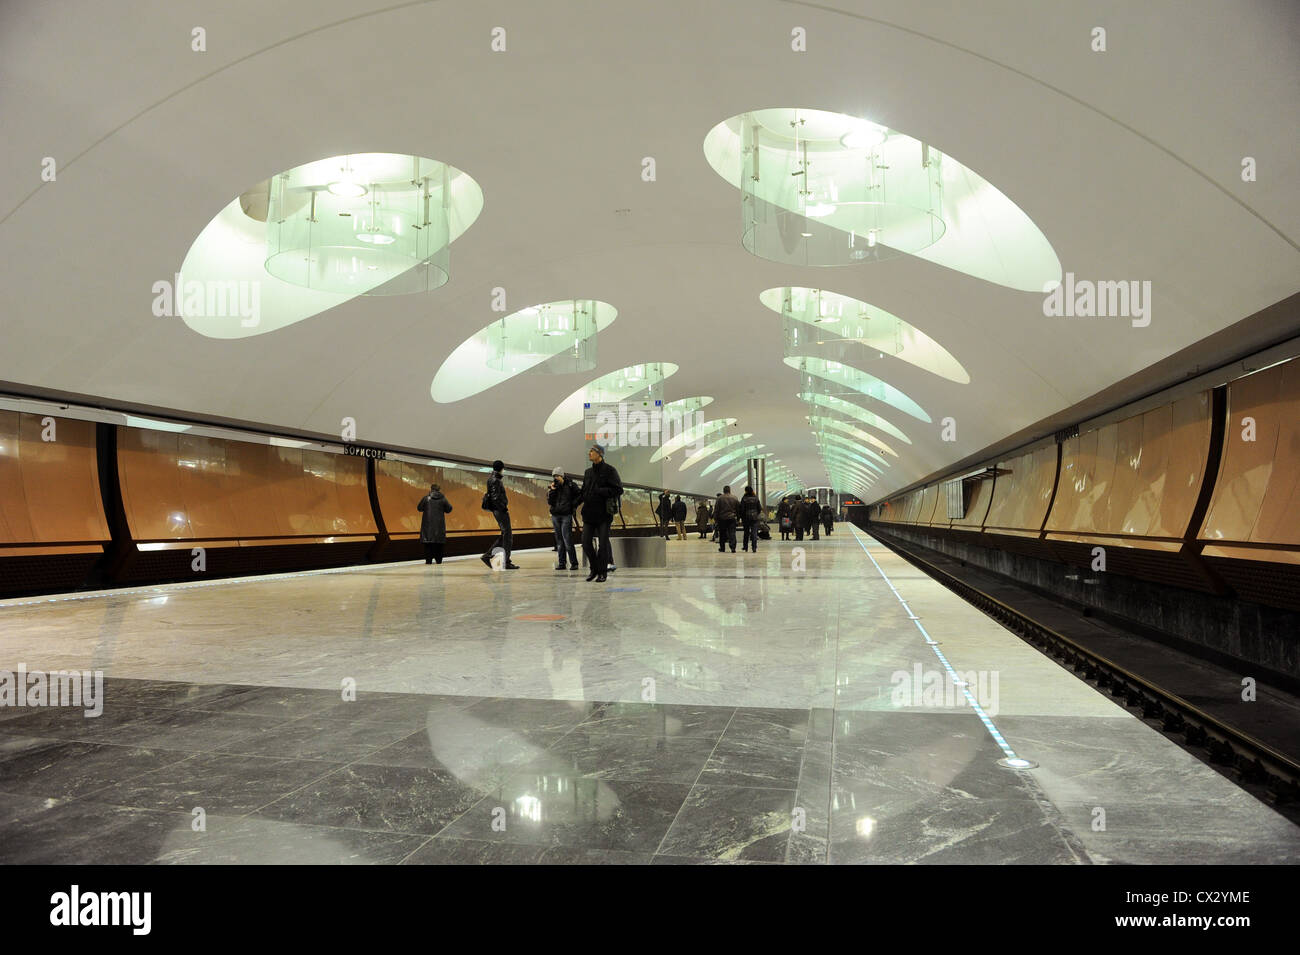 MOSCOW, RUSSIA. DECEMBER 2, 2011. General view of the newly opened Borisovo metro station. (Photo ITAR-TASS / Mitya - Stock Image